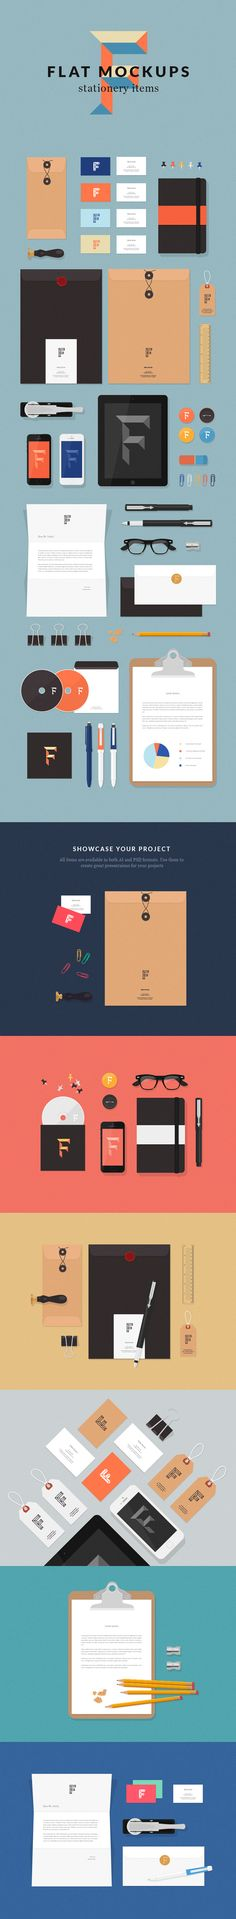 Flat MockUps – Stationery Items :: free download